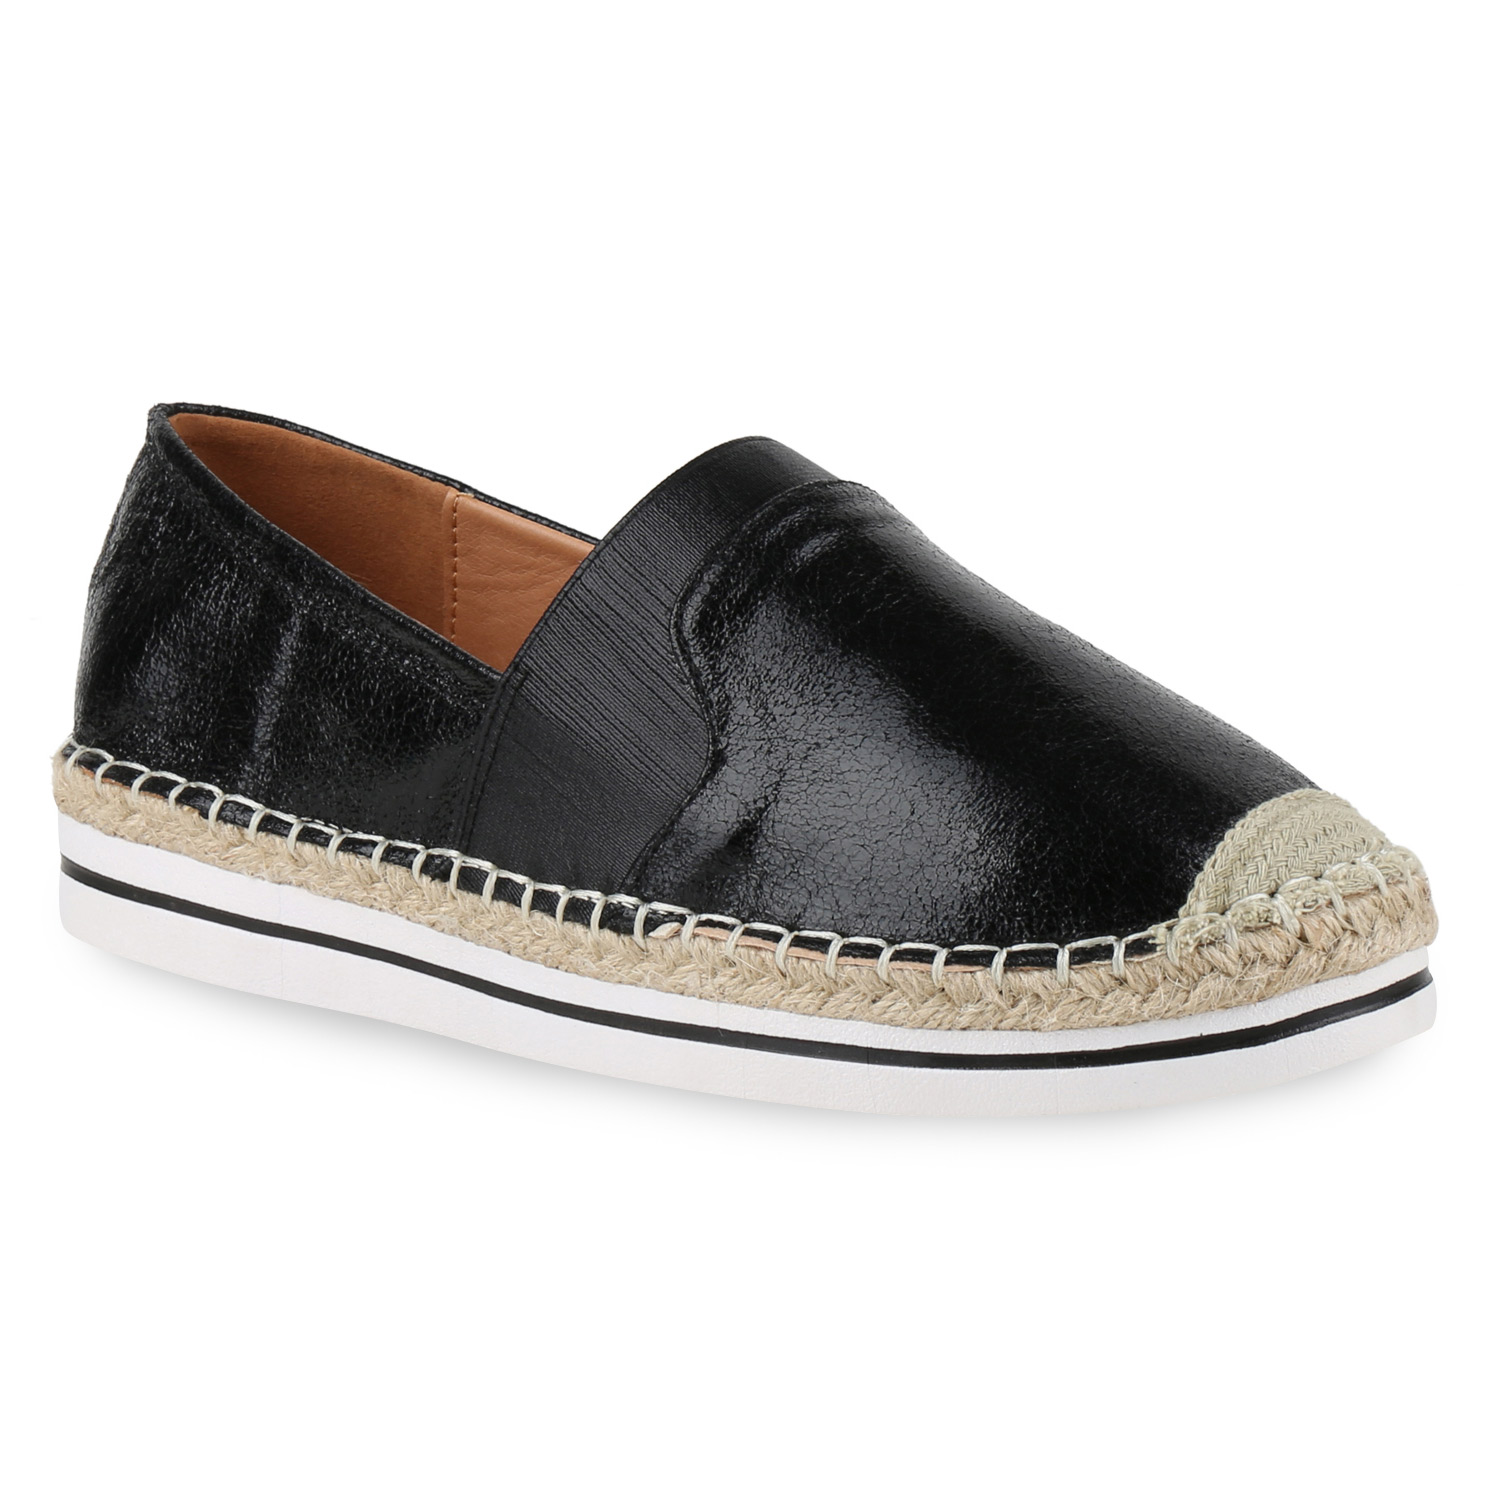 damen slipper slip ons bast espadrilles metallic freizeit schuhe flats 814955 ebay. Black Bedroom Furniture Sets. Home Design Ideas